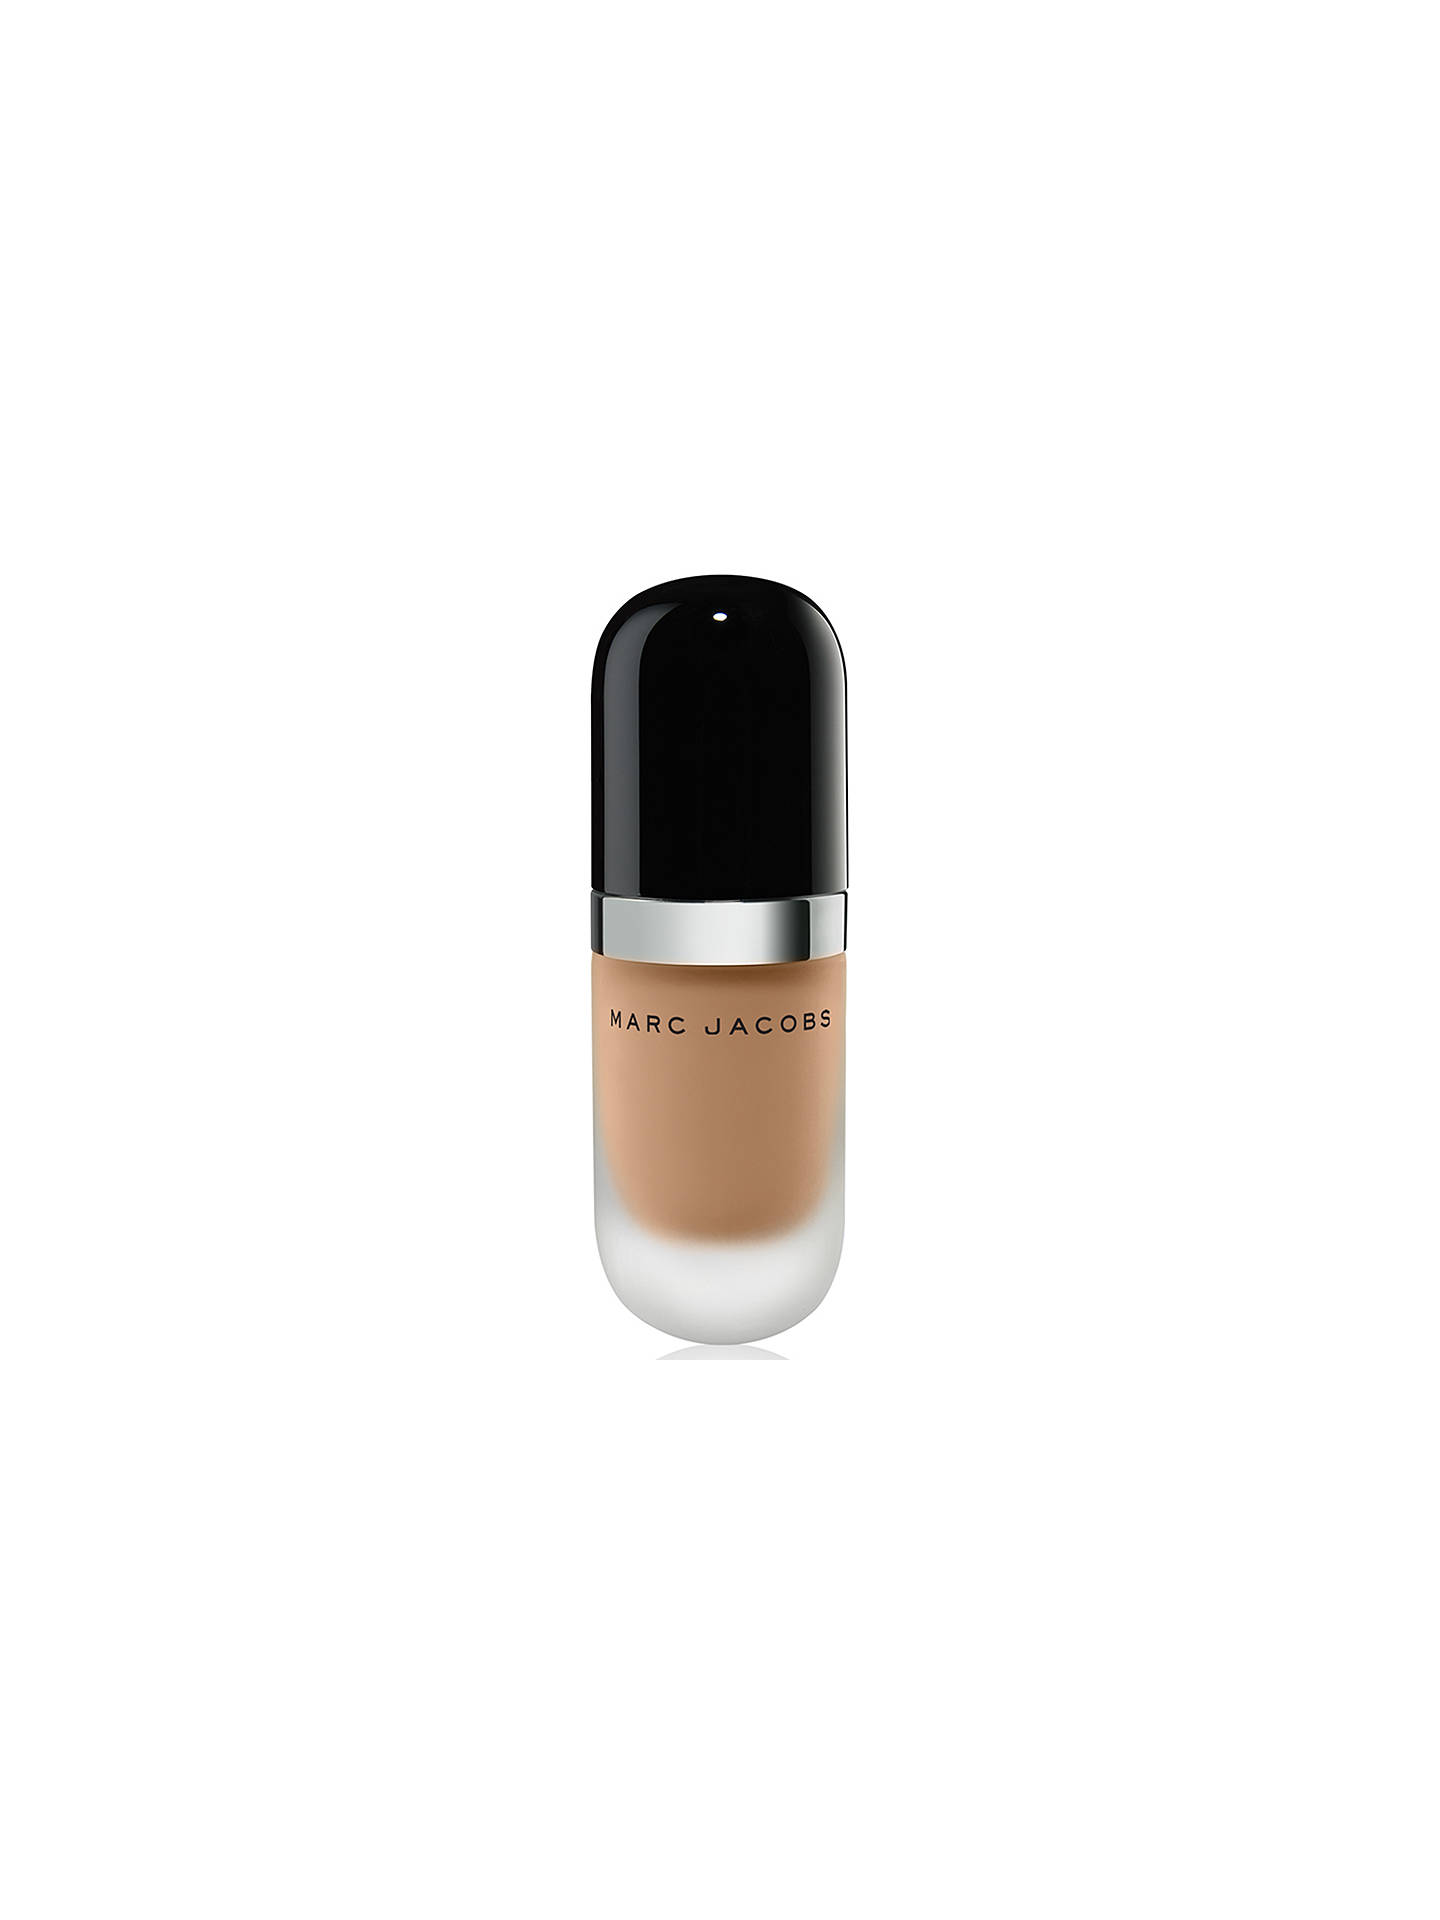 BuyMarc Jacobs Re(Marc)Able Full Cover Foundation Concentrate, Beige Taupe Online at johnlewis.com